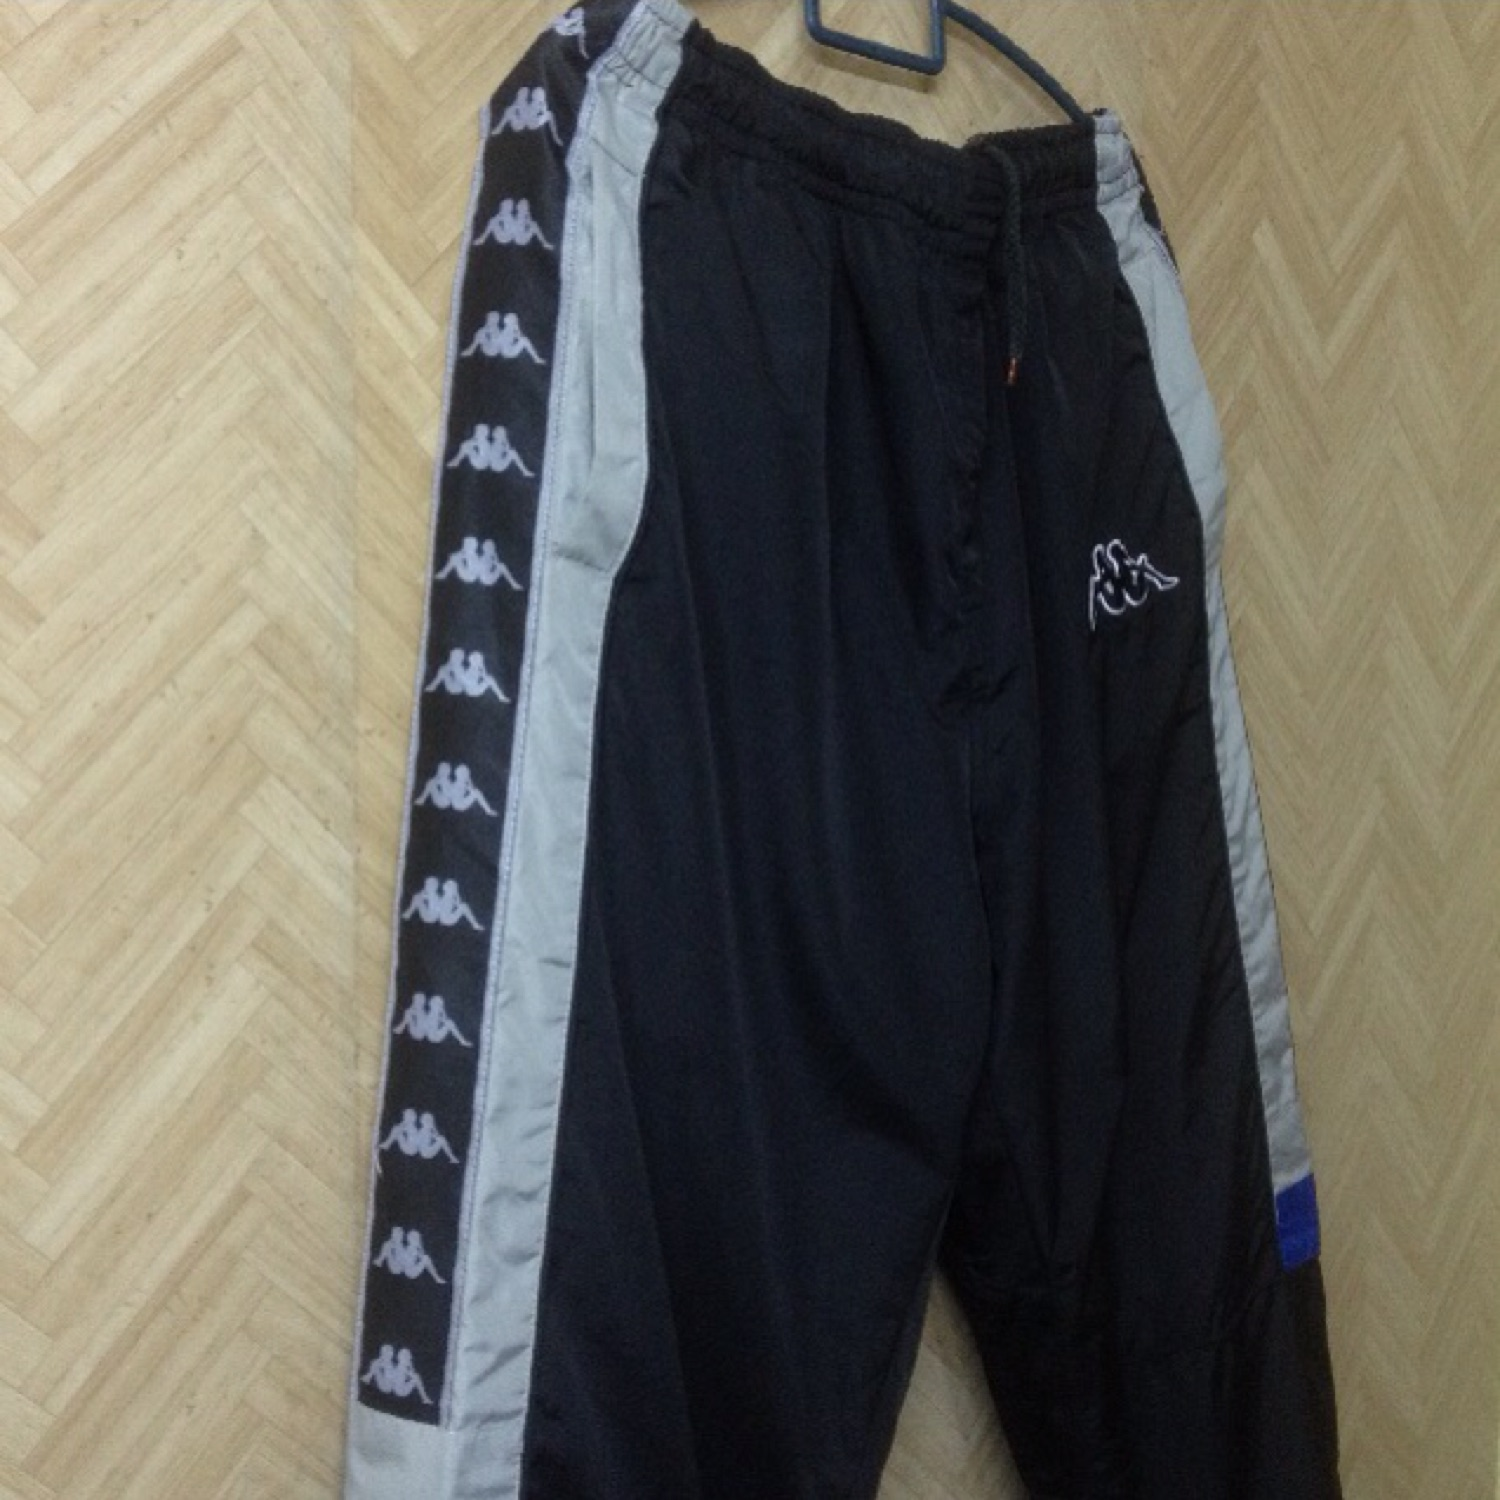 Kappa Nylon Pants